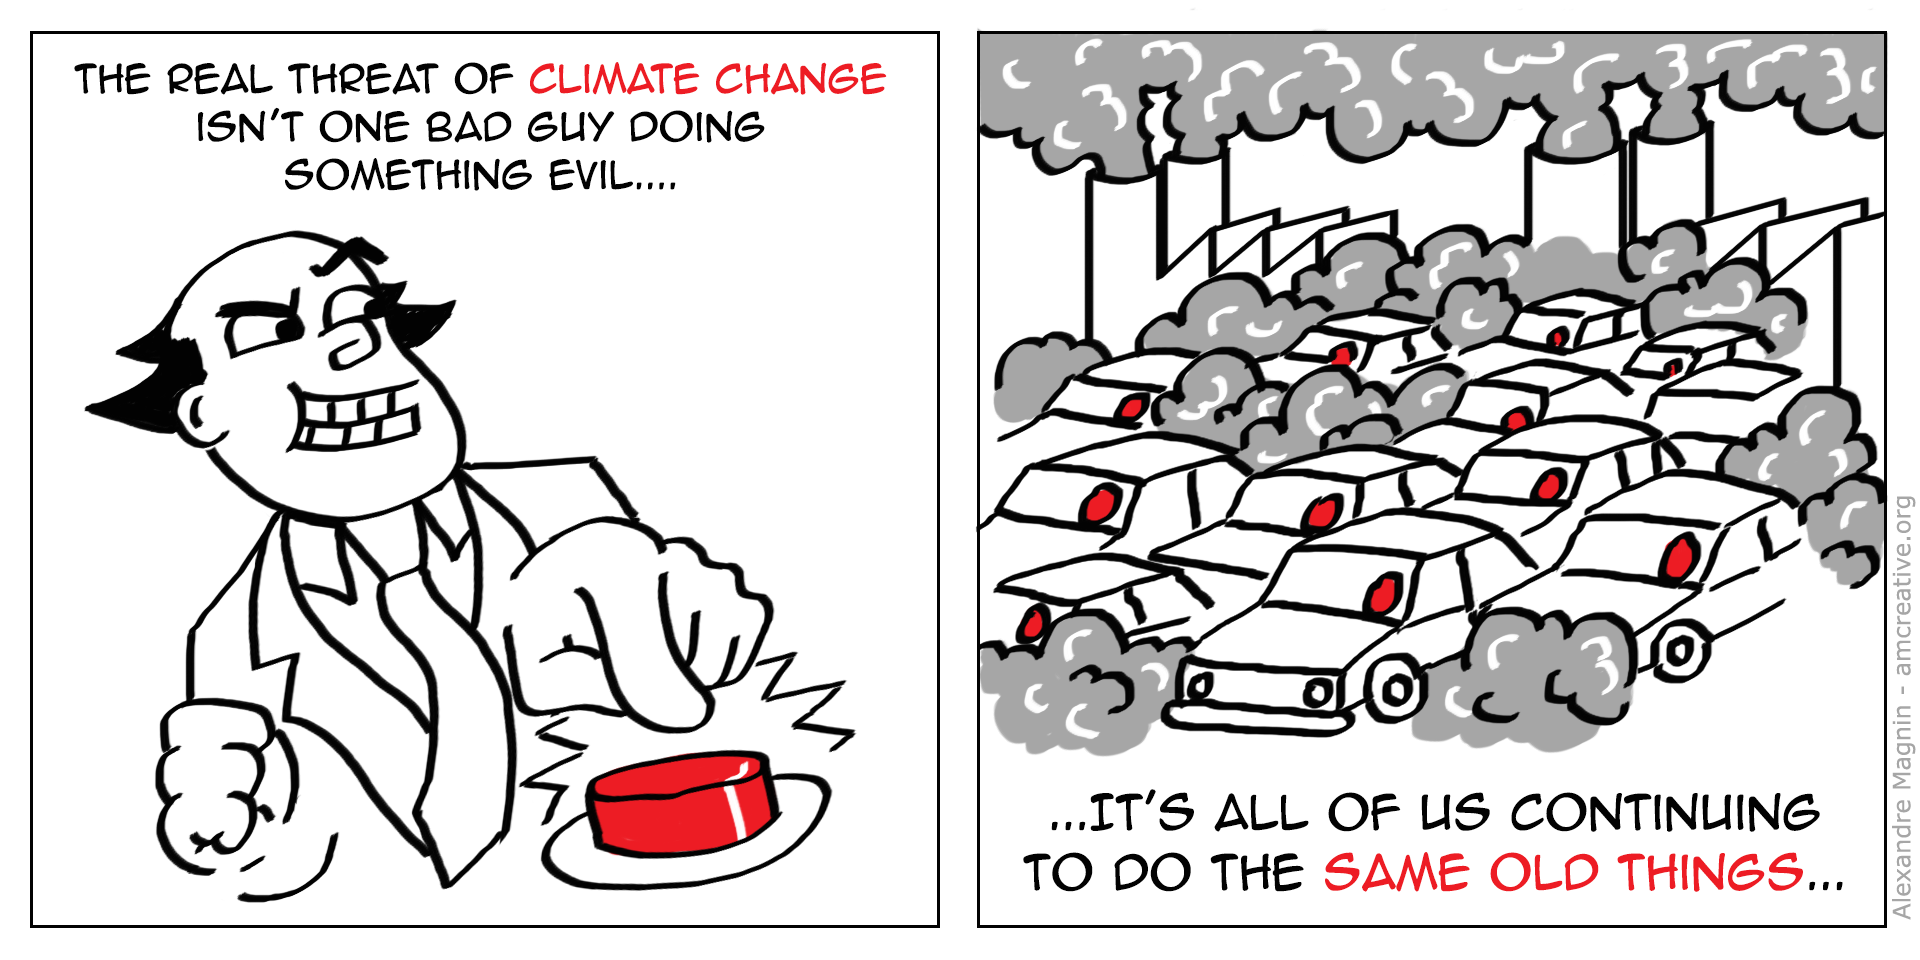 COP-21-Cartoon-Climate-Change